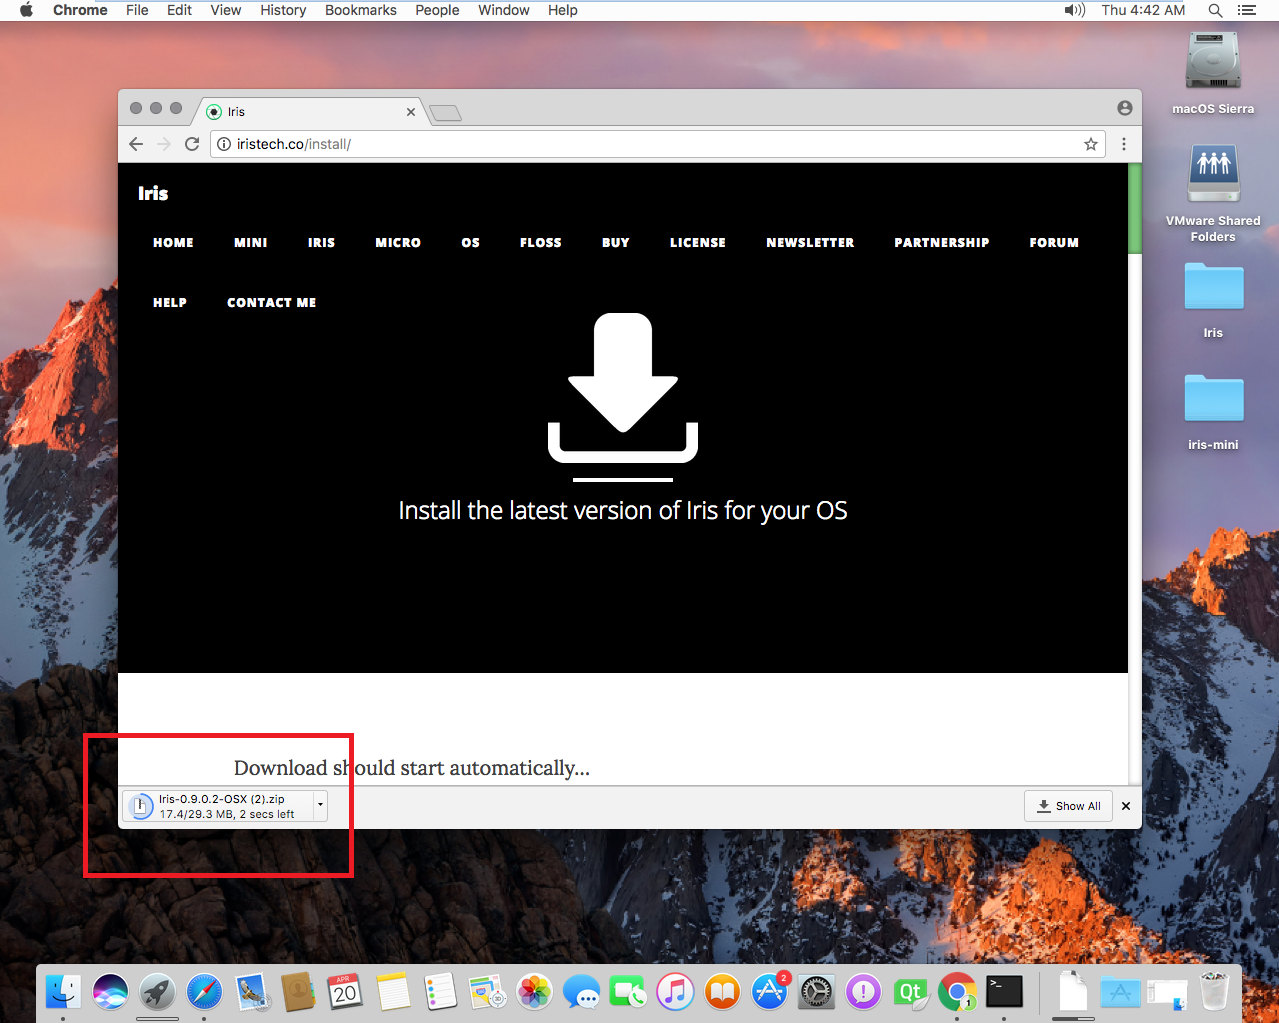 How To Download Iris With Chrome On Mac Osx How To Download Iris With  Chrome On